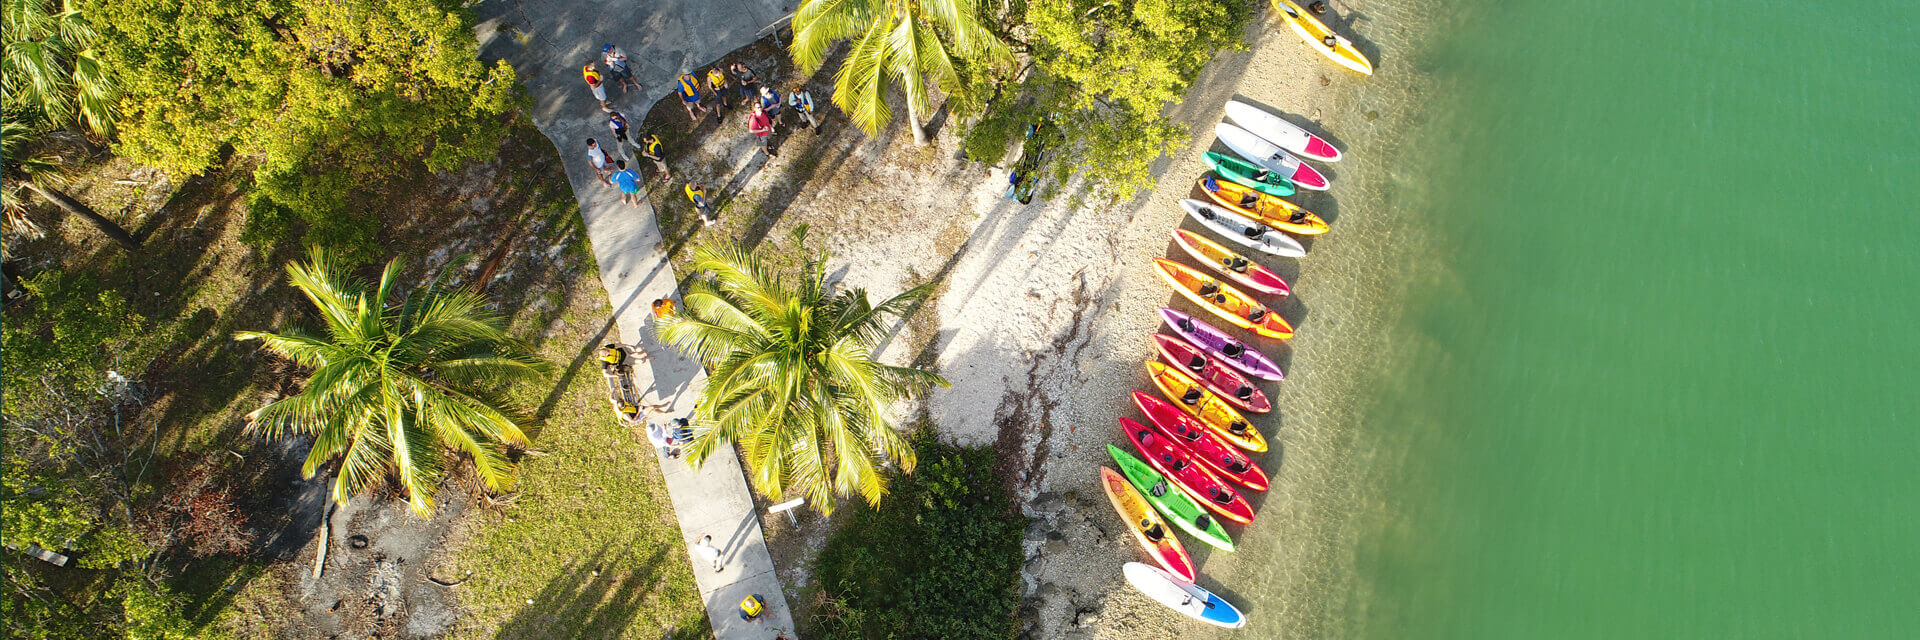 Kayak Rentals Miami Beach Pelican Harbor